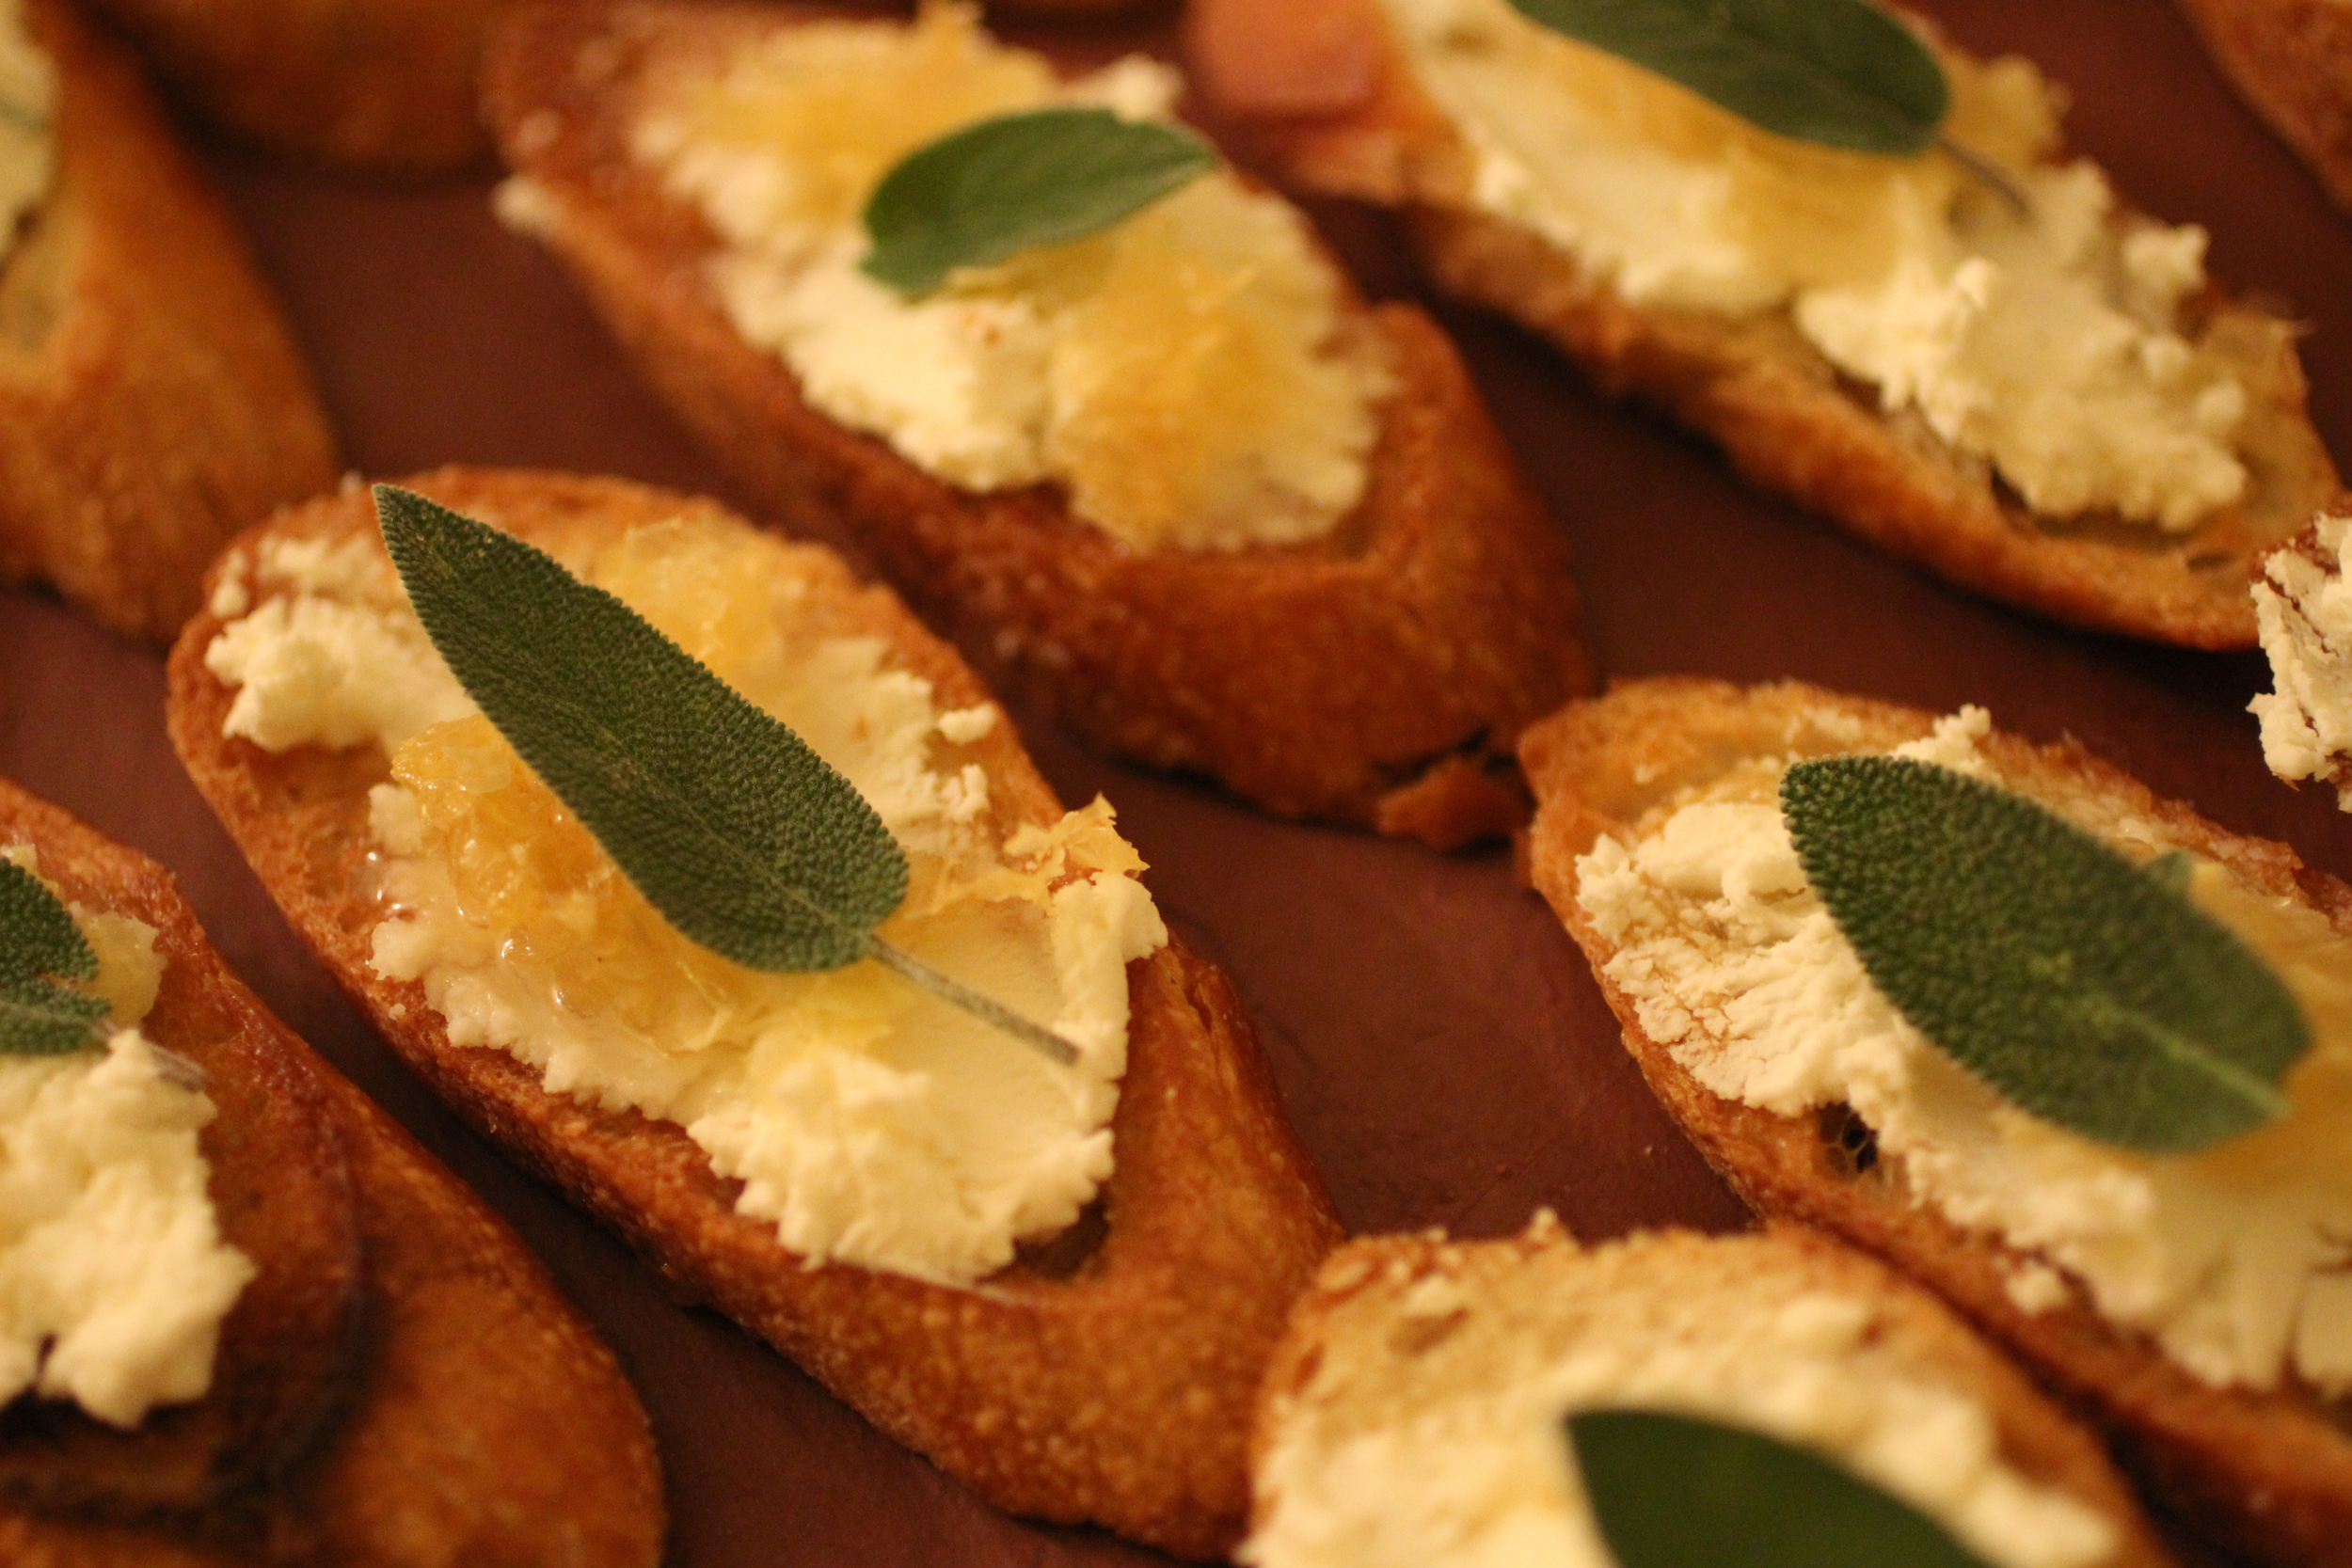 Creamy, tart chèvre backdrop with sweet, crunchy honeycomb, and rustic sage.